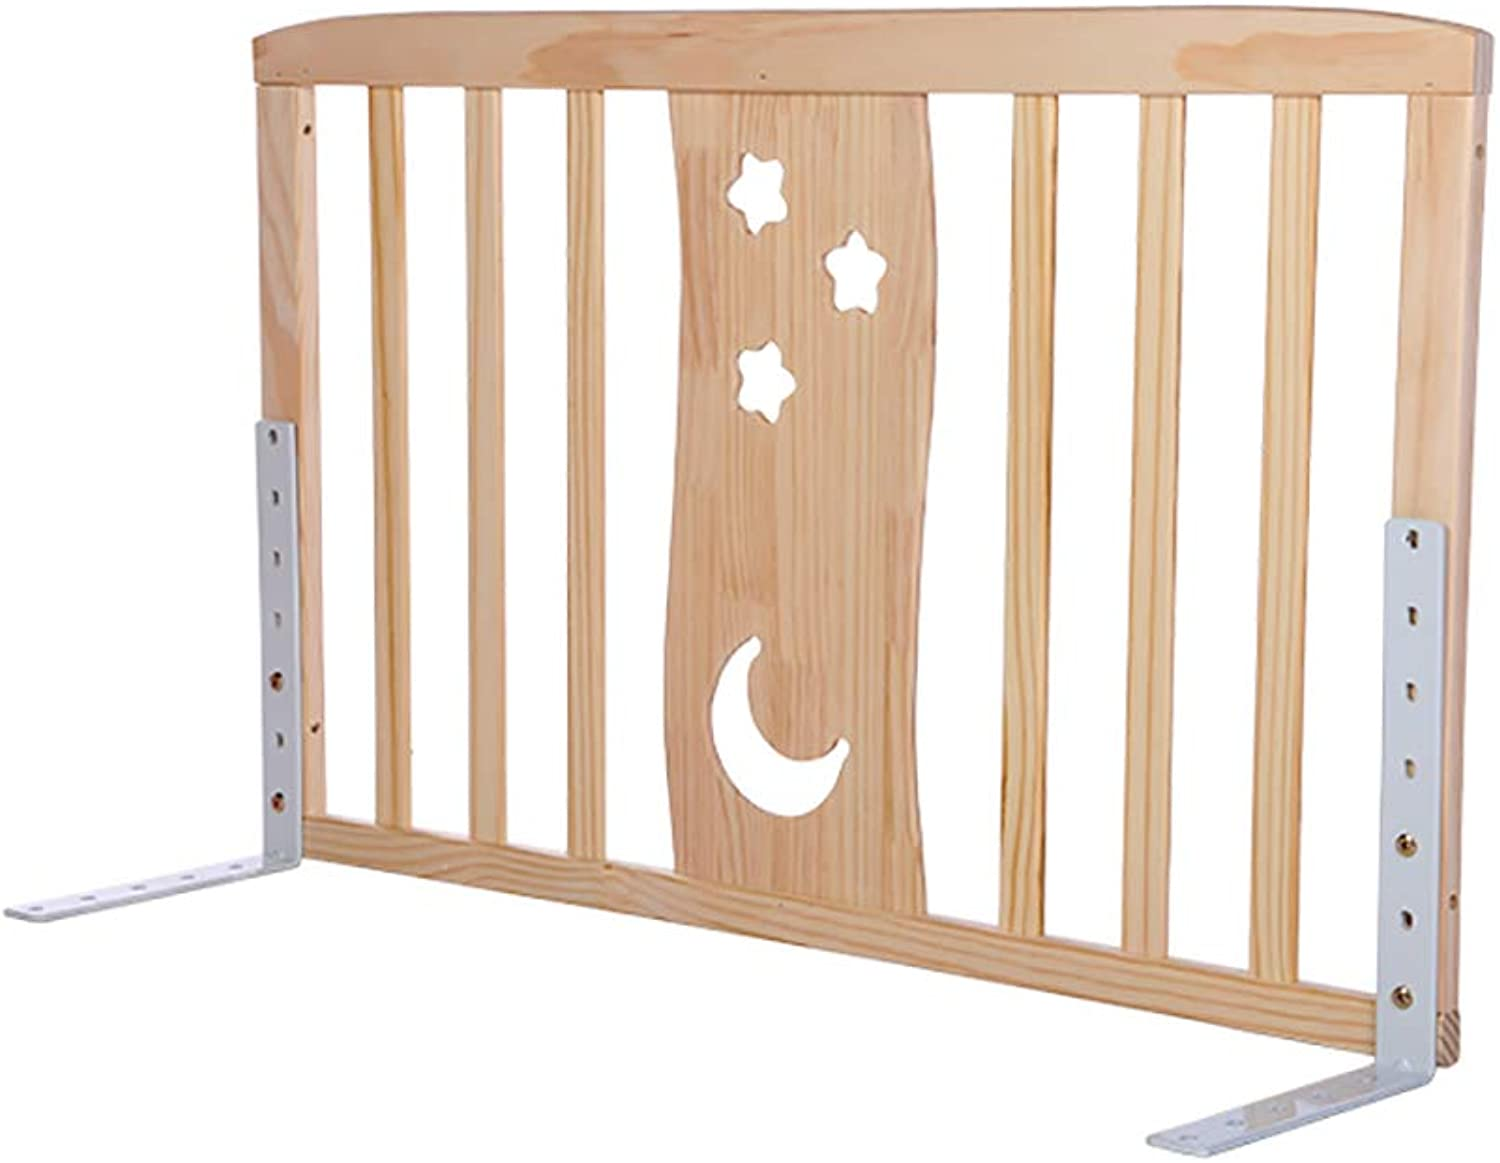 Playpen Playard Wood Infant Toddlers Bed Rail Guardrail, Adjustable Height Anti-Fall Bed Guard Assist Bar for King Size Bed (Size   Length 90cm)